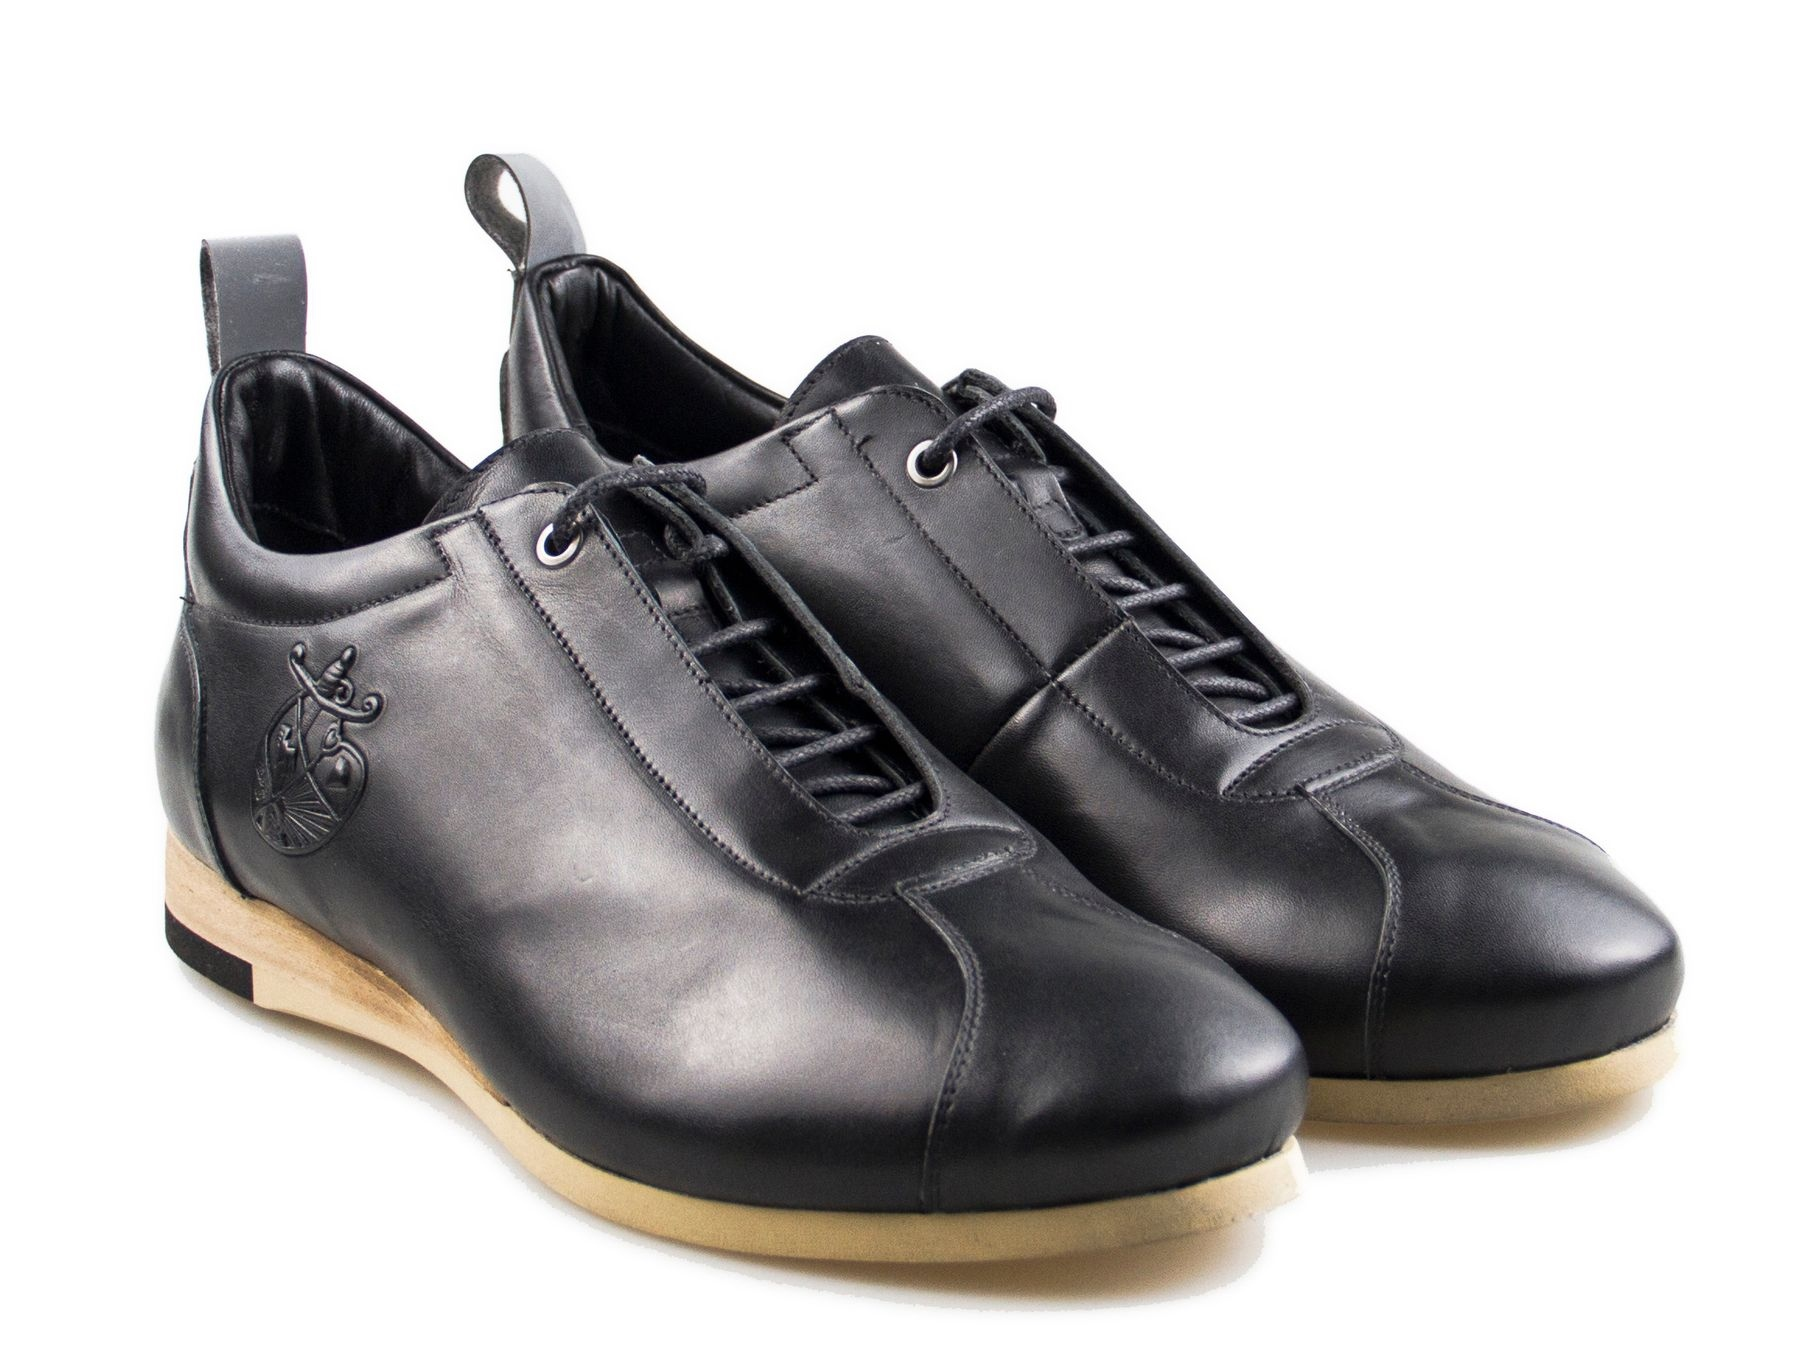 tobia longarini footwear crafted lancillotto dakota low art. ll259